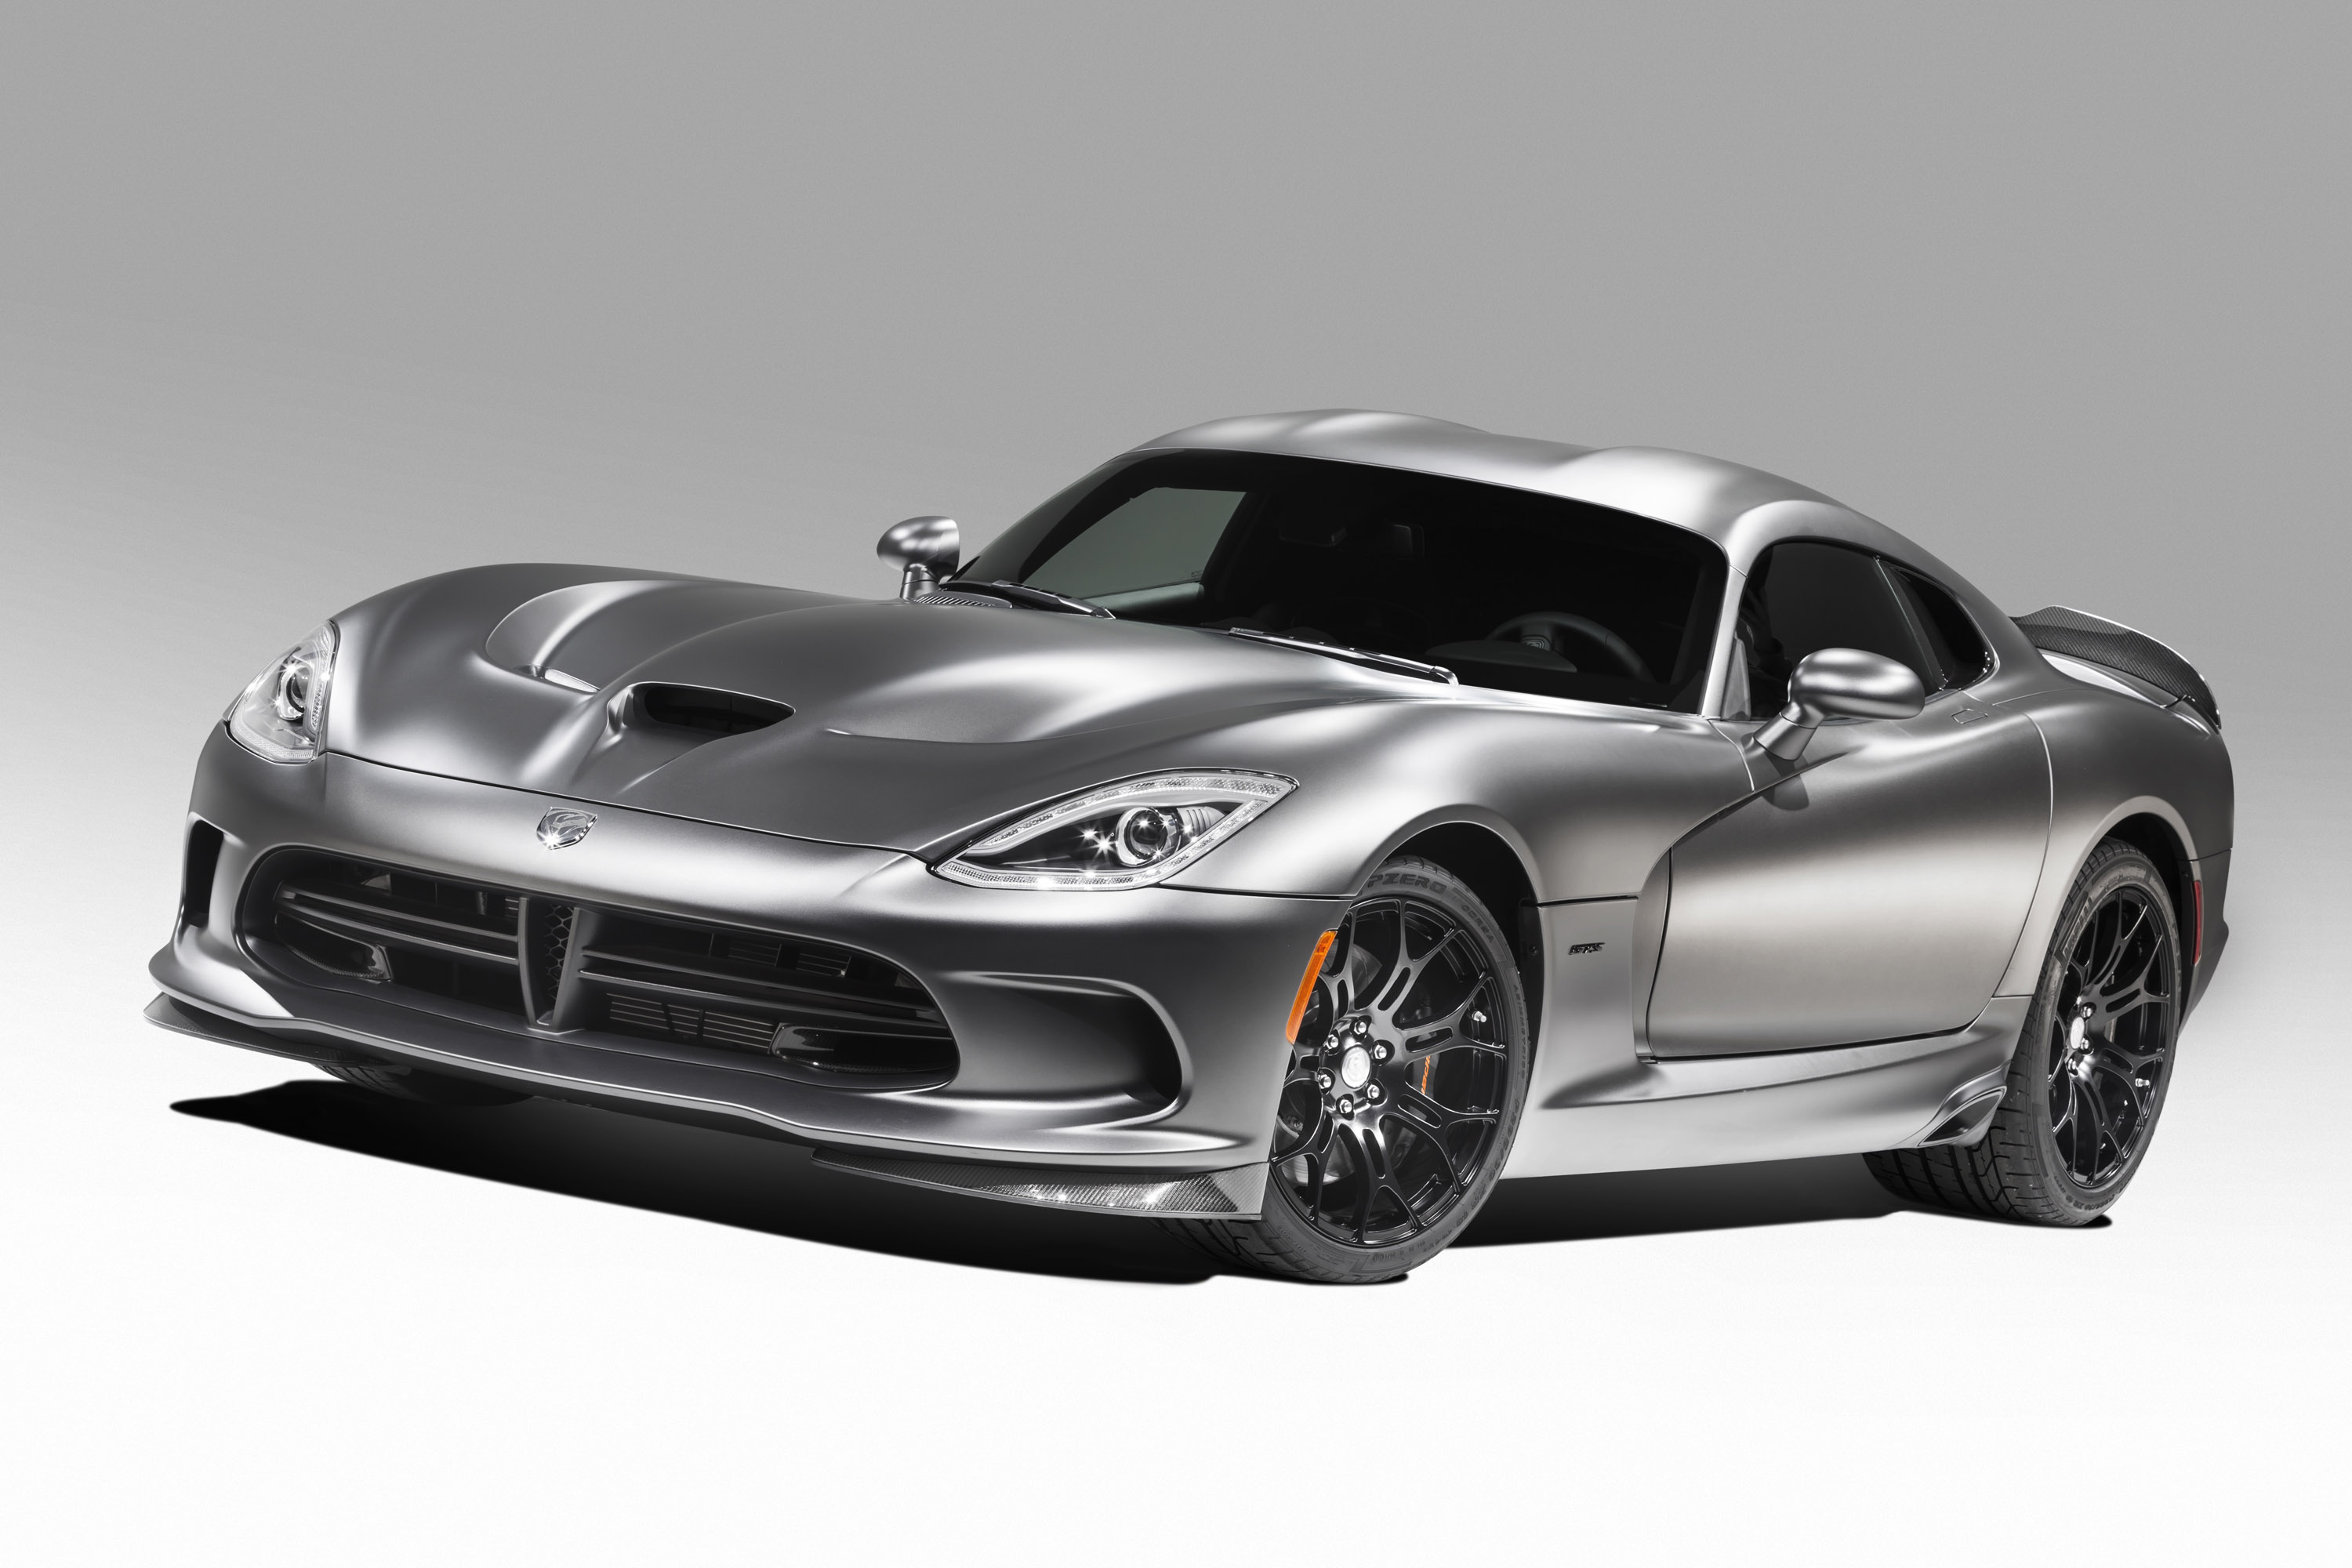 Dodge Viper GTS Time Attack Carbon Special Edition